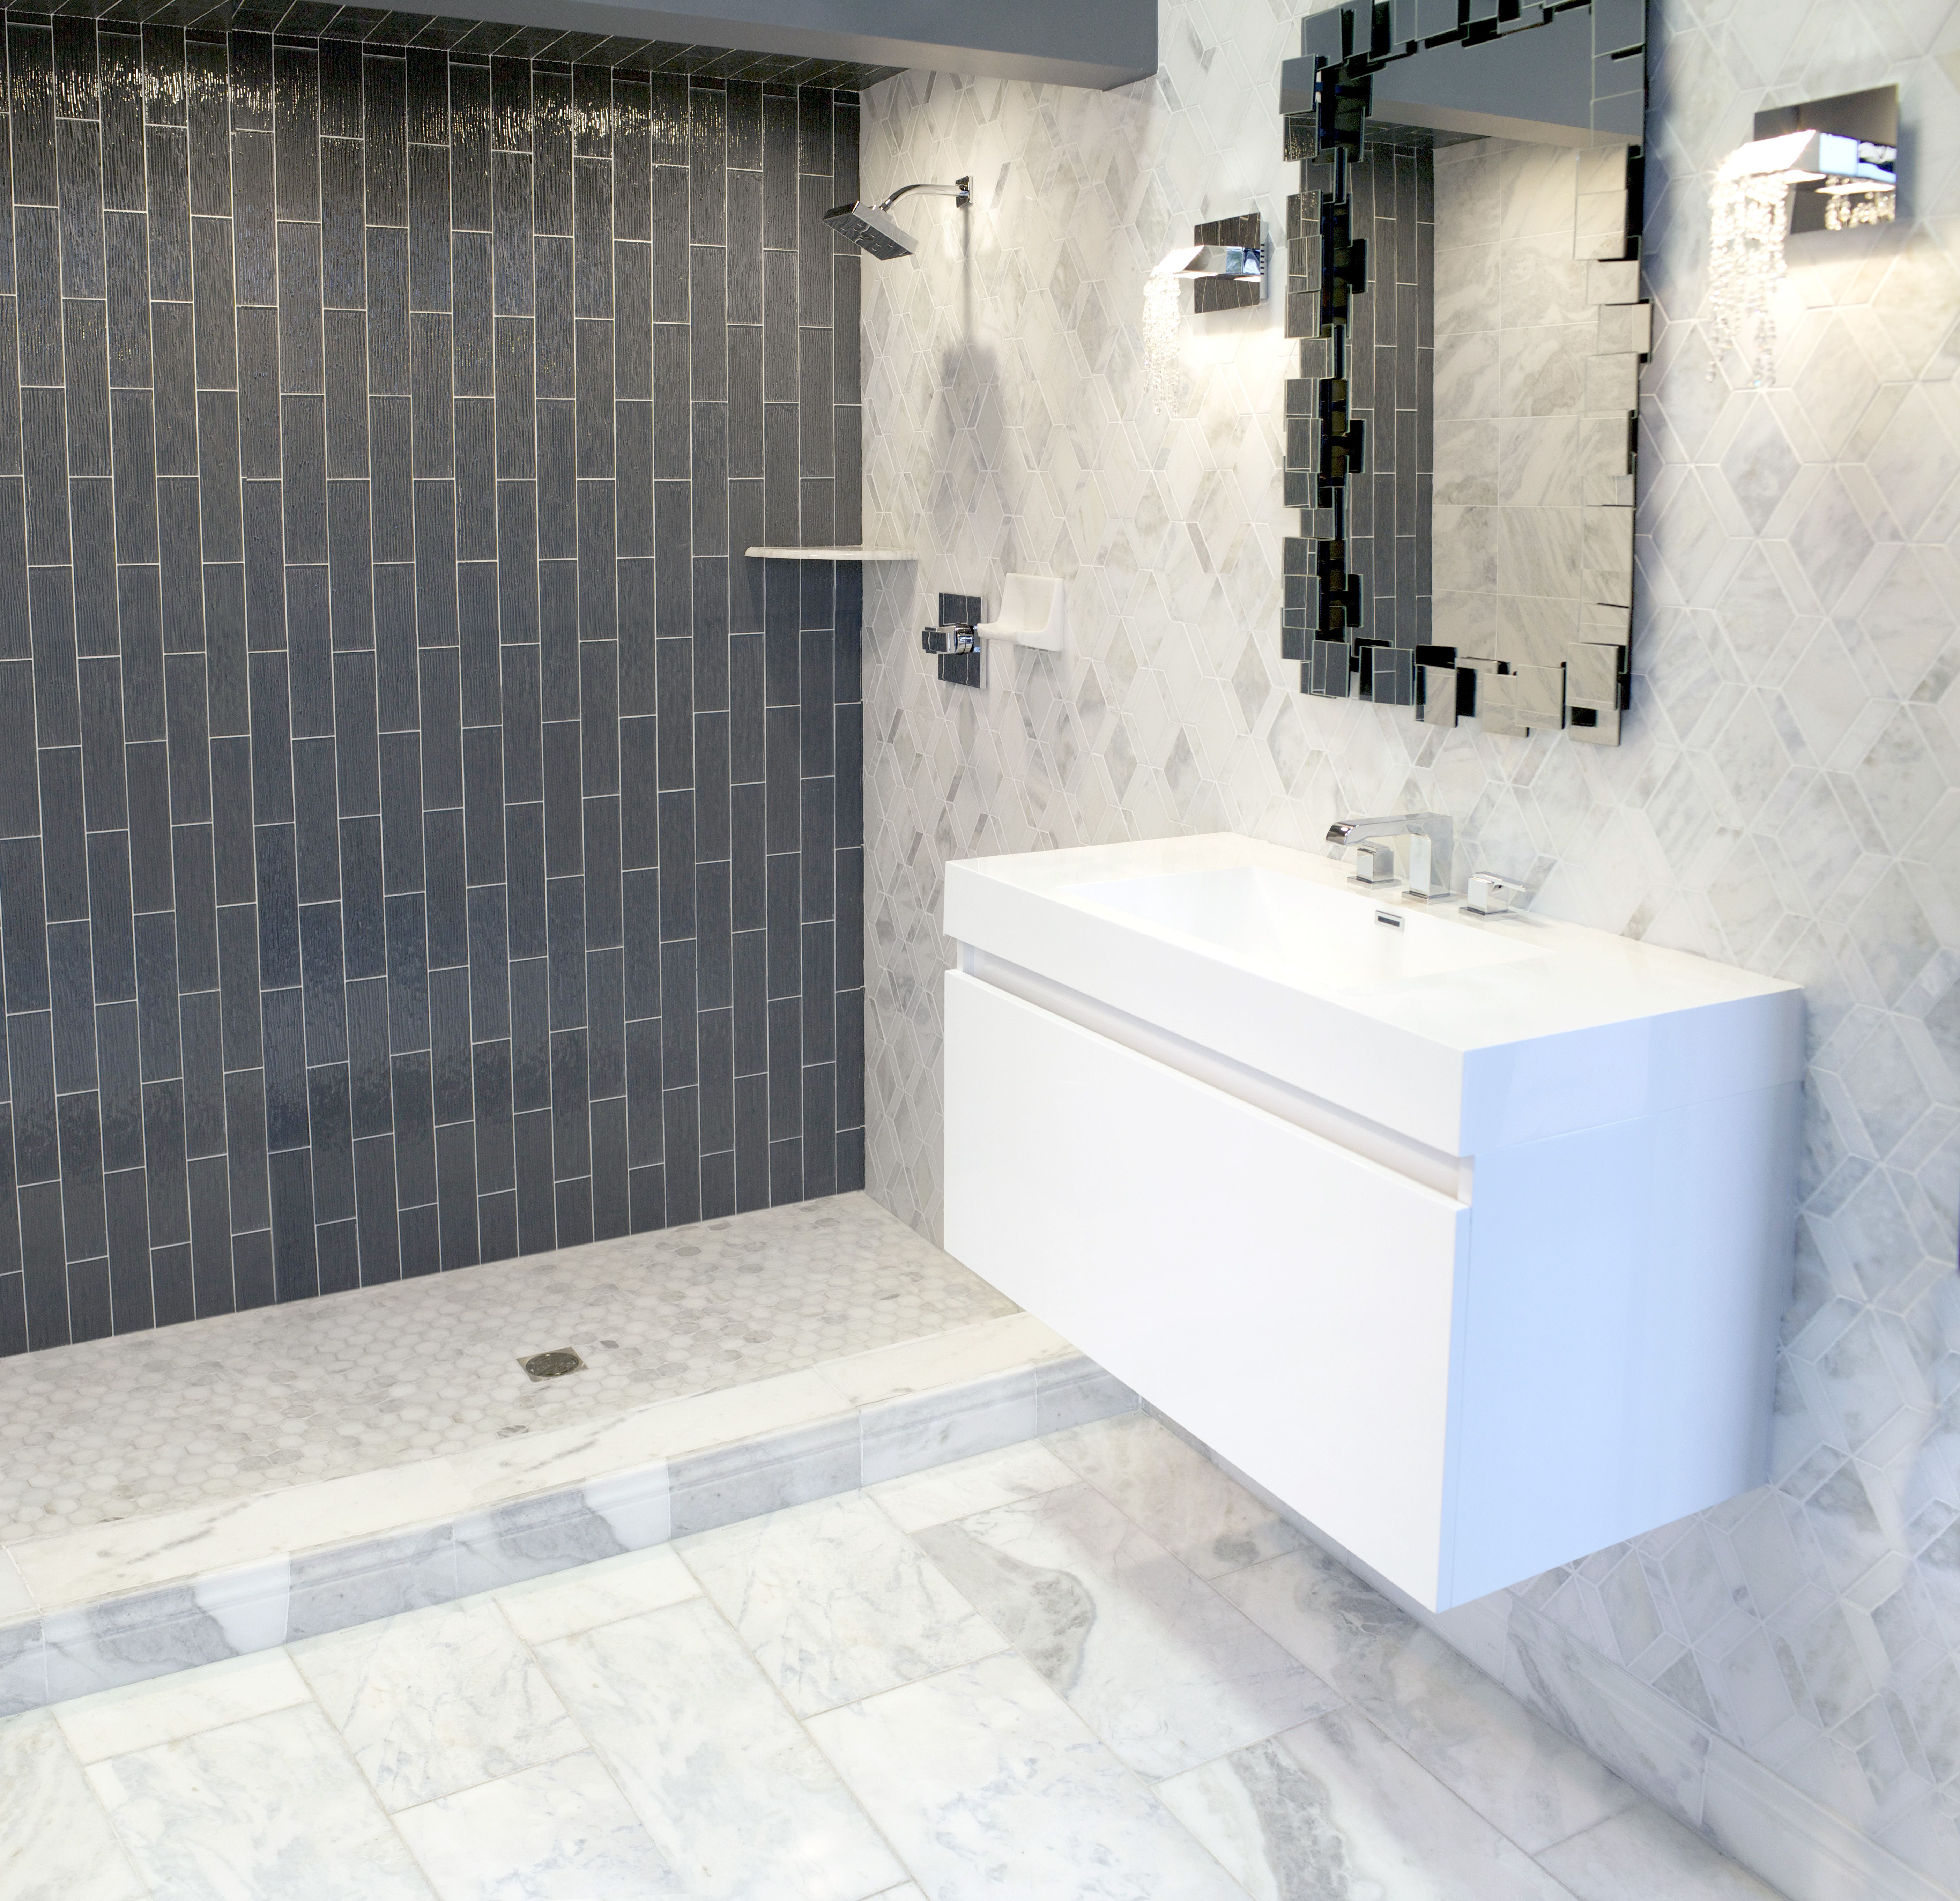 The Tempesta Neve Marble Collection Displayed Here With The Charcoal Rain Glass Wall Tile